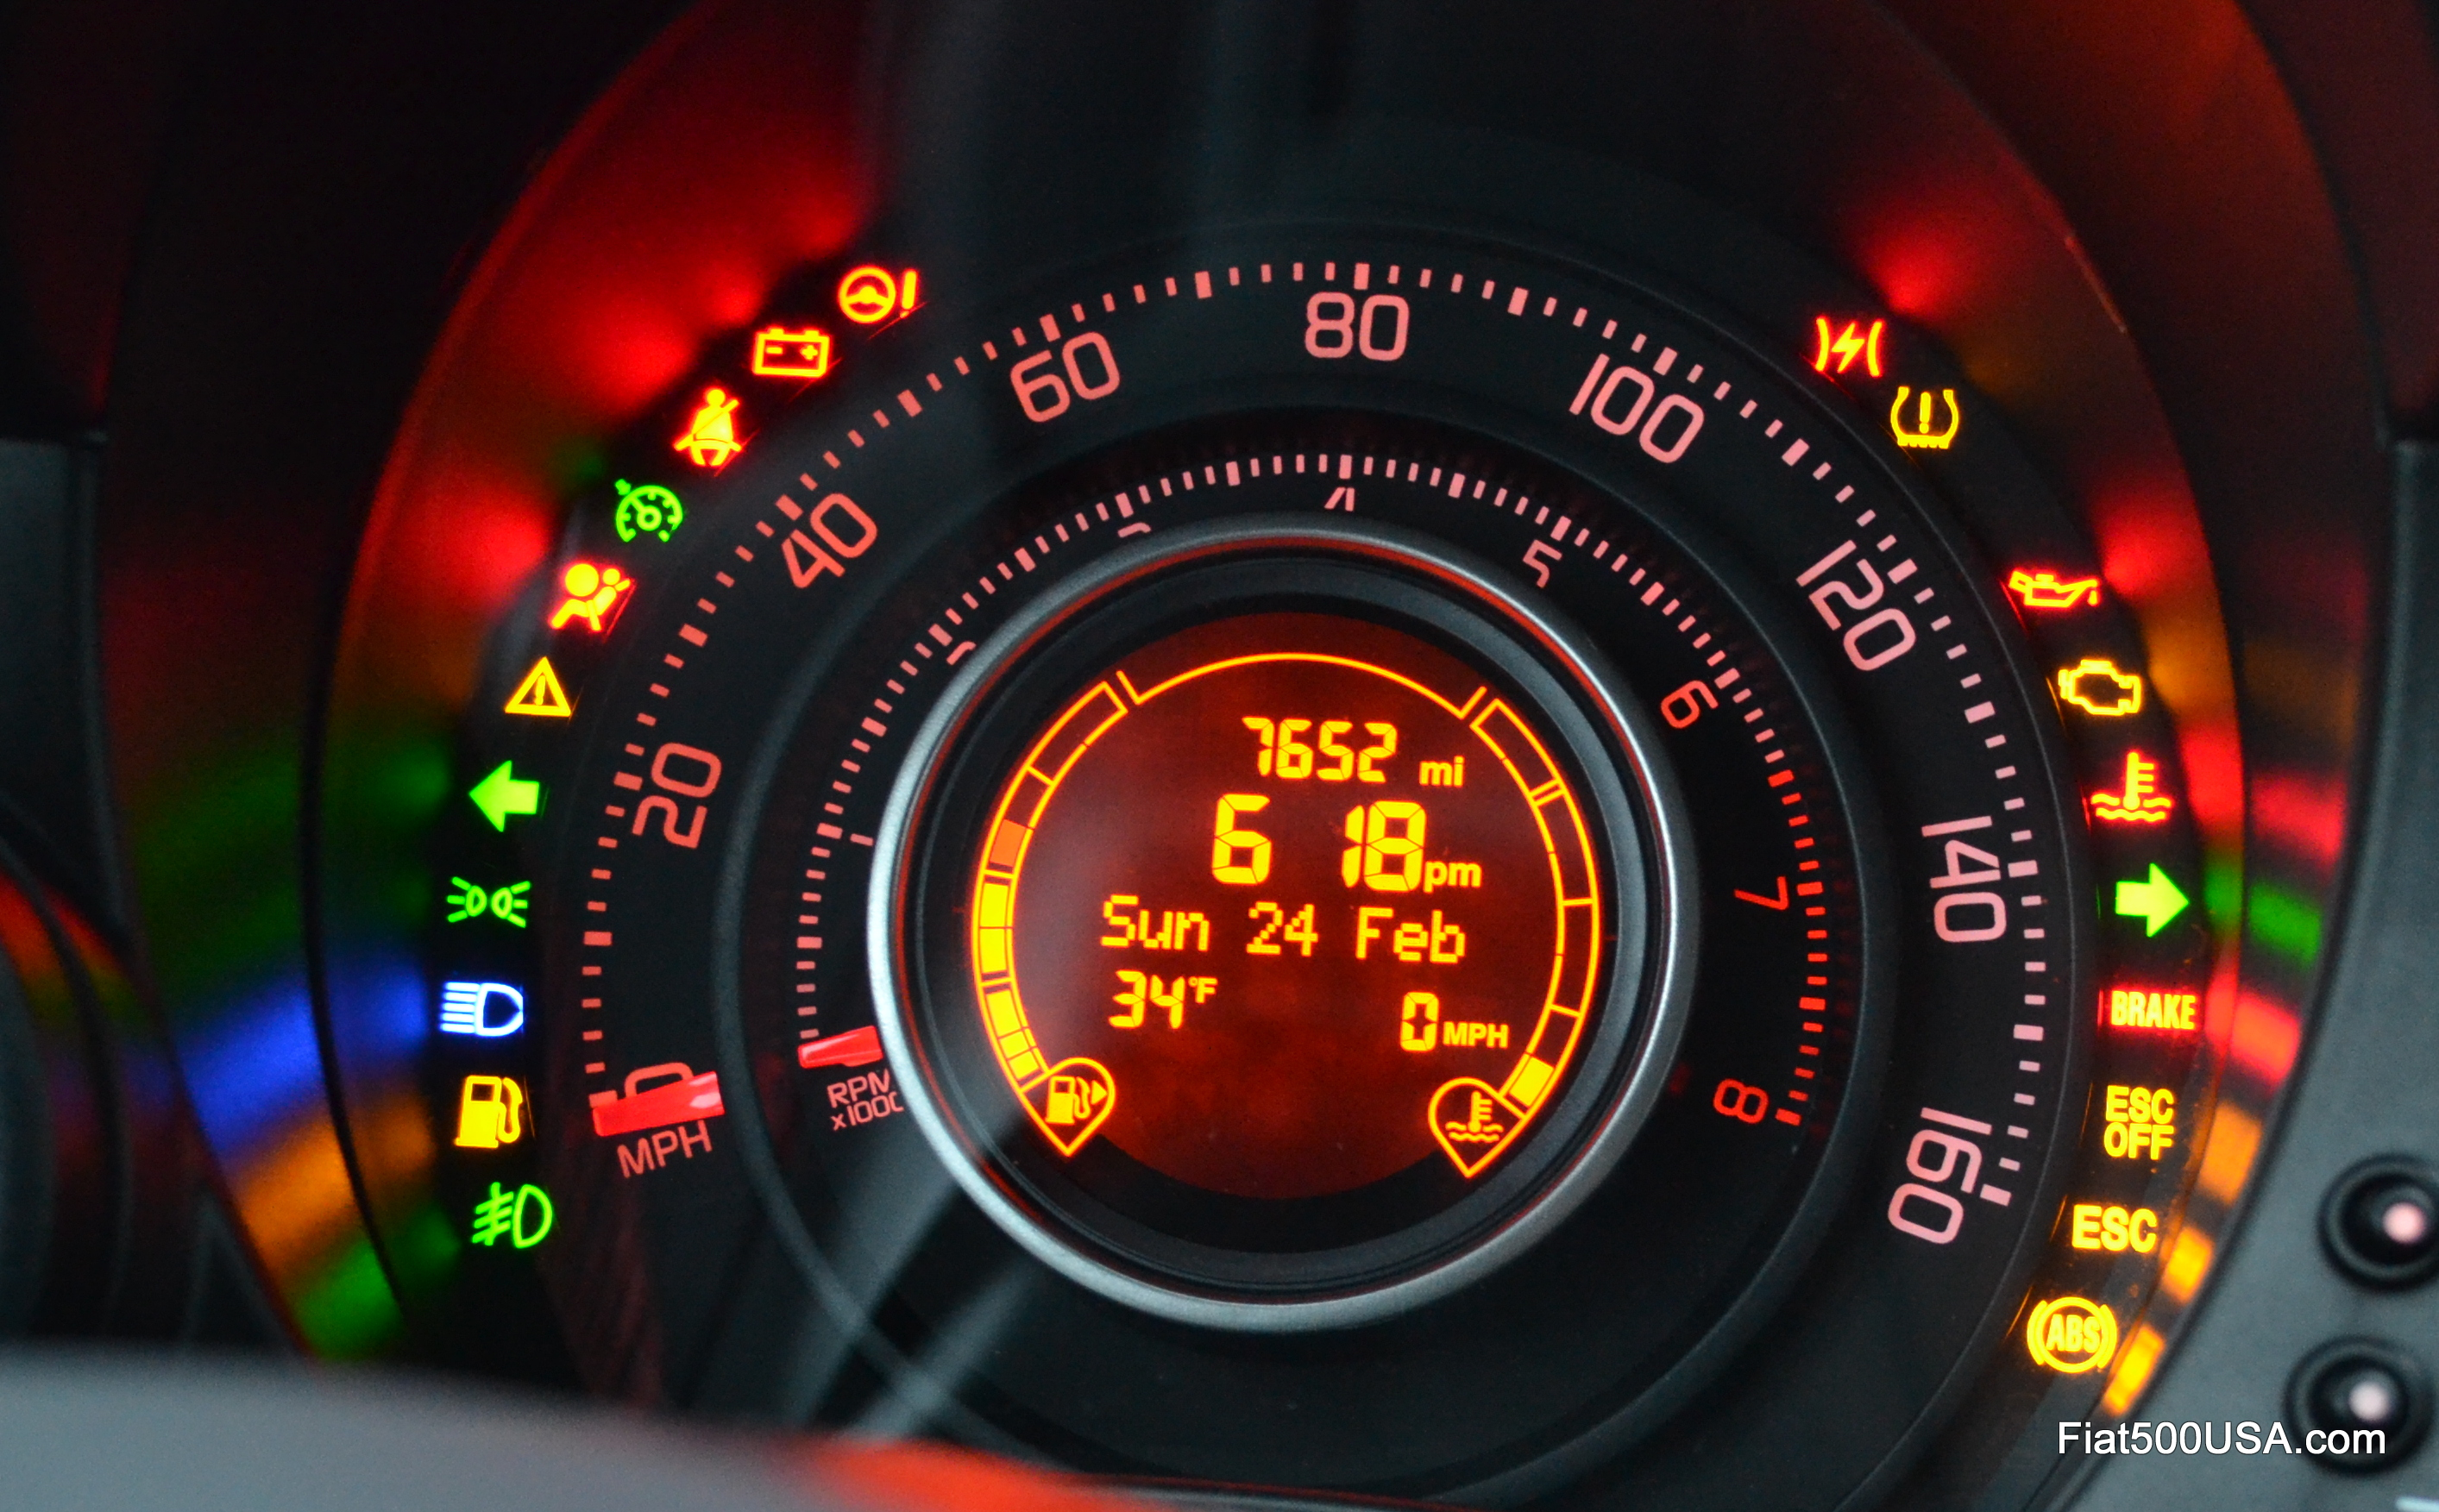 A look at the Fiat 500 Instrument Panel | Fiat 500 USA